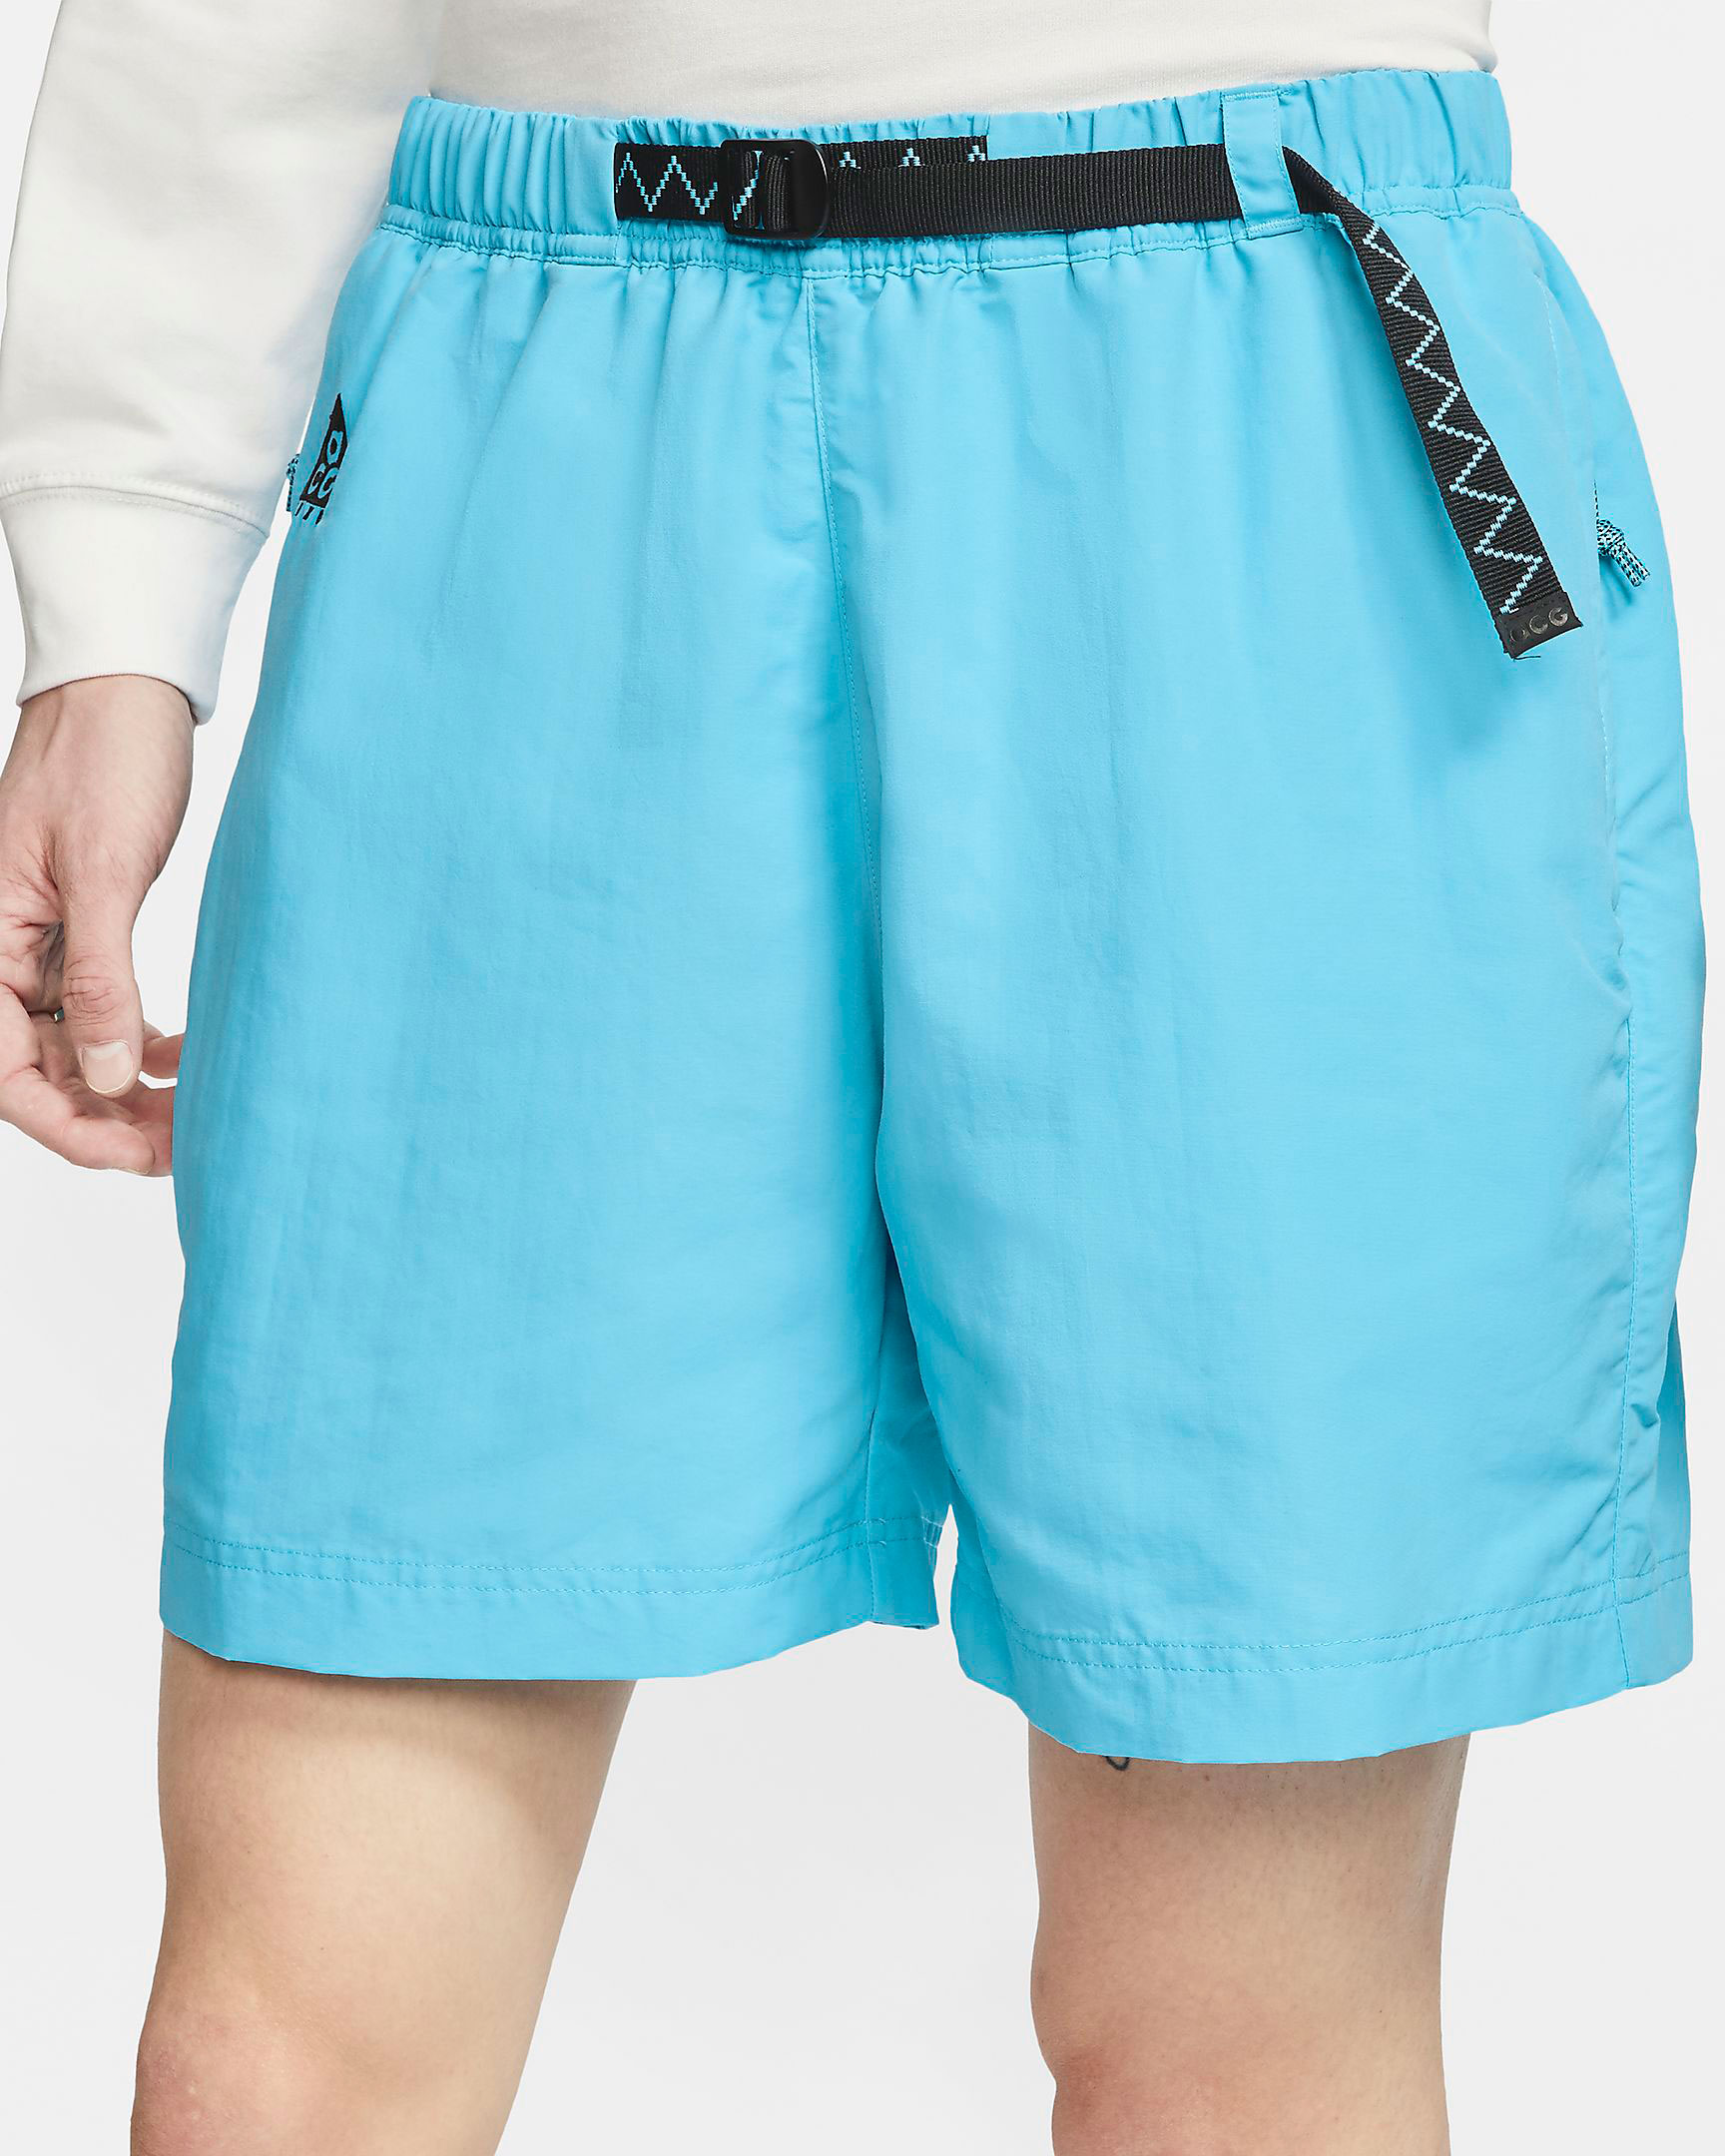 nike-acg-shorts-blue